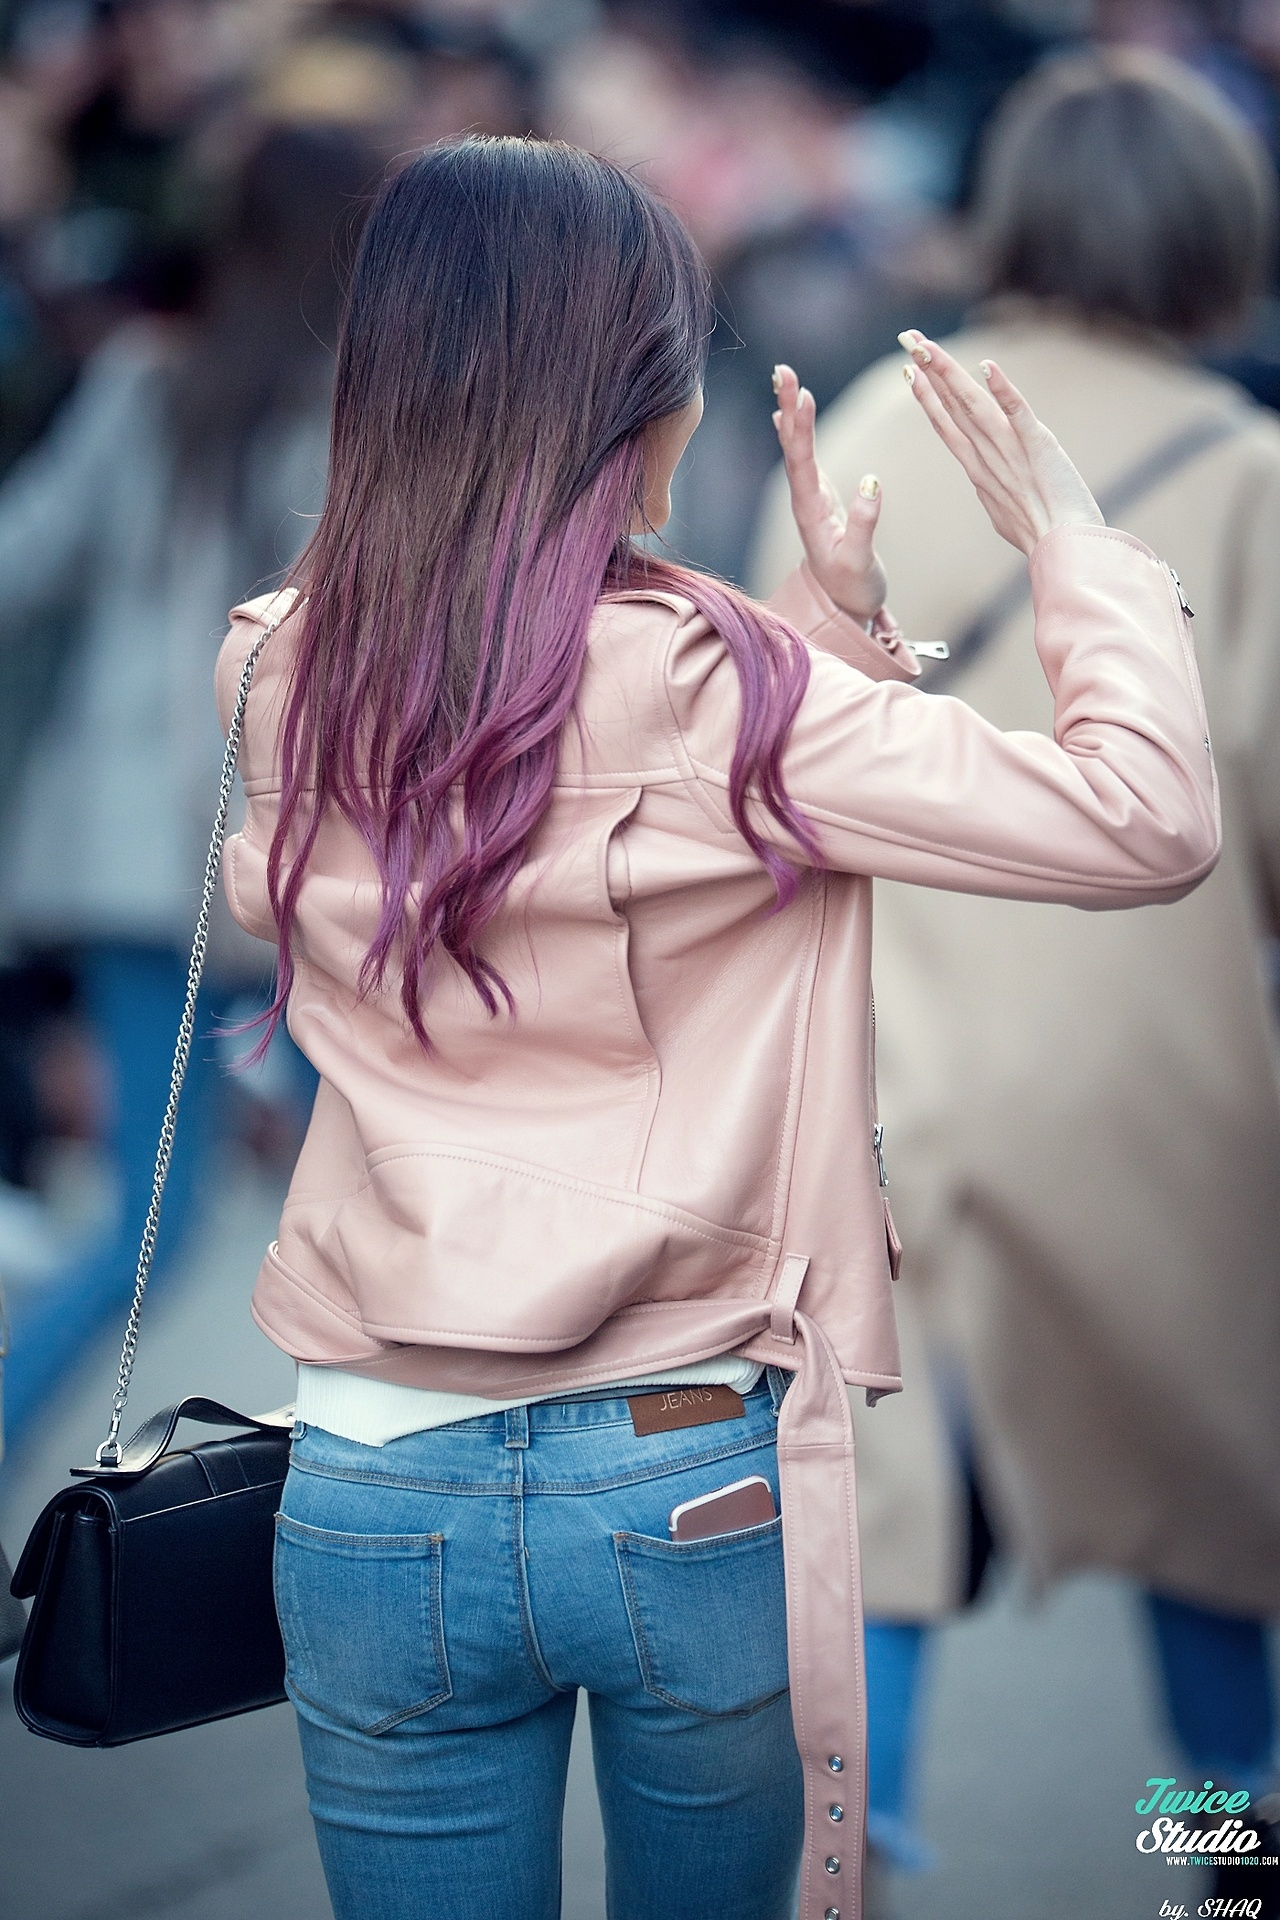 fans claim twice sana's butt looks huge in these jeans - koreaboo